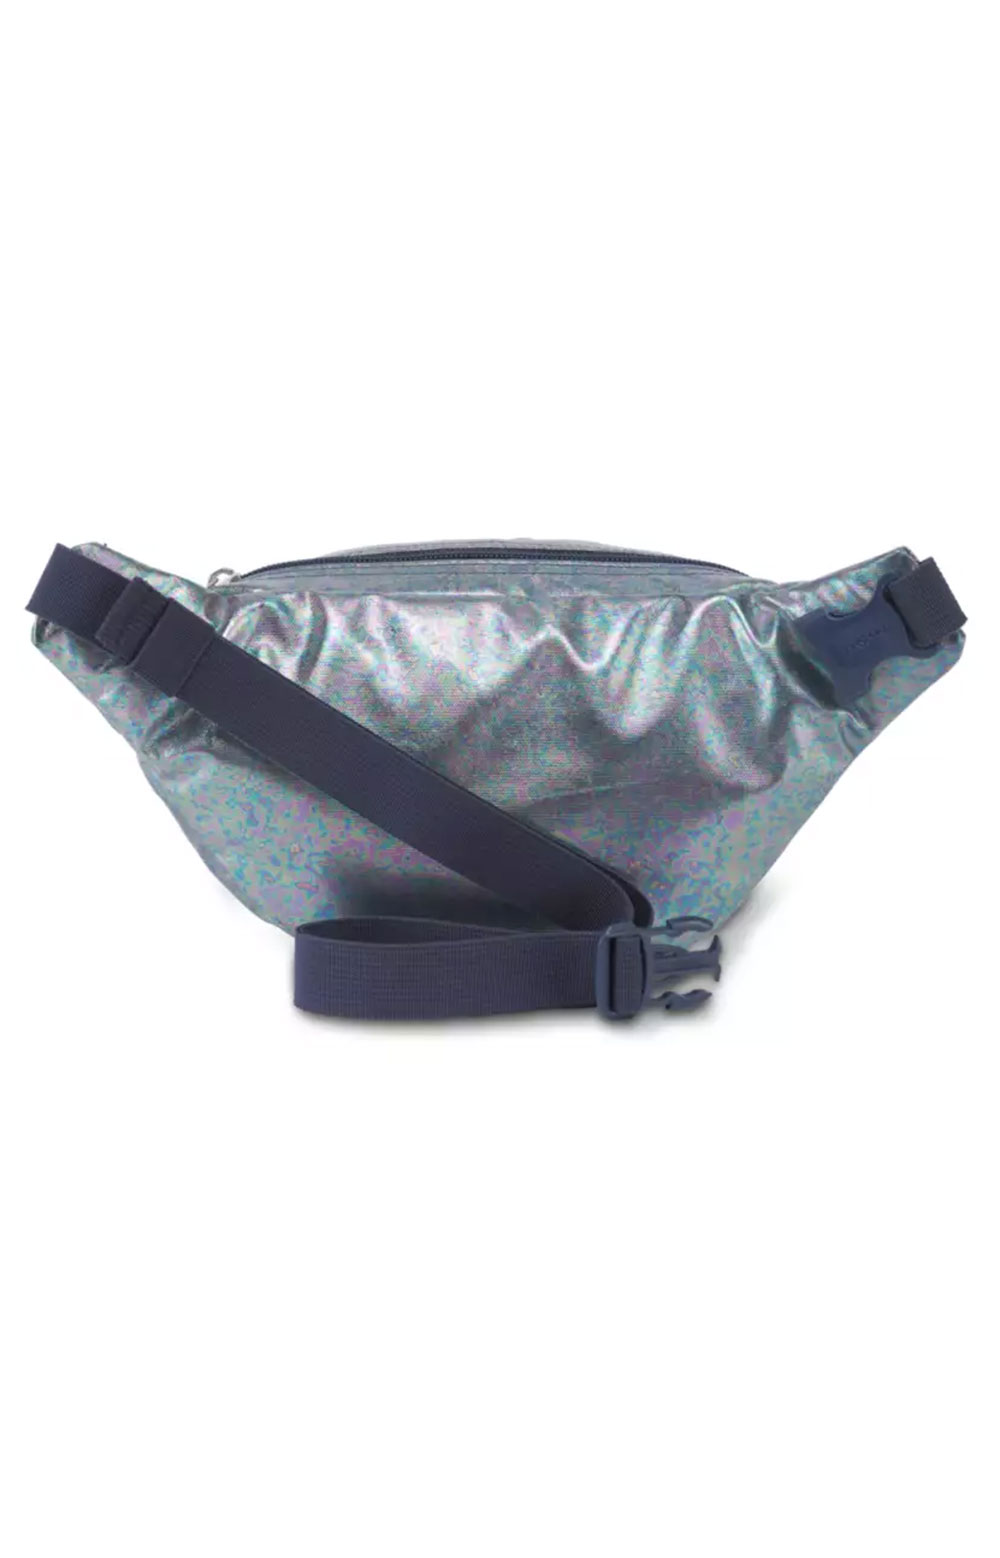 Fifth Avenue FX Fanny Pack - Mermaid Pearlized Shine 3